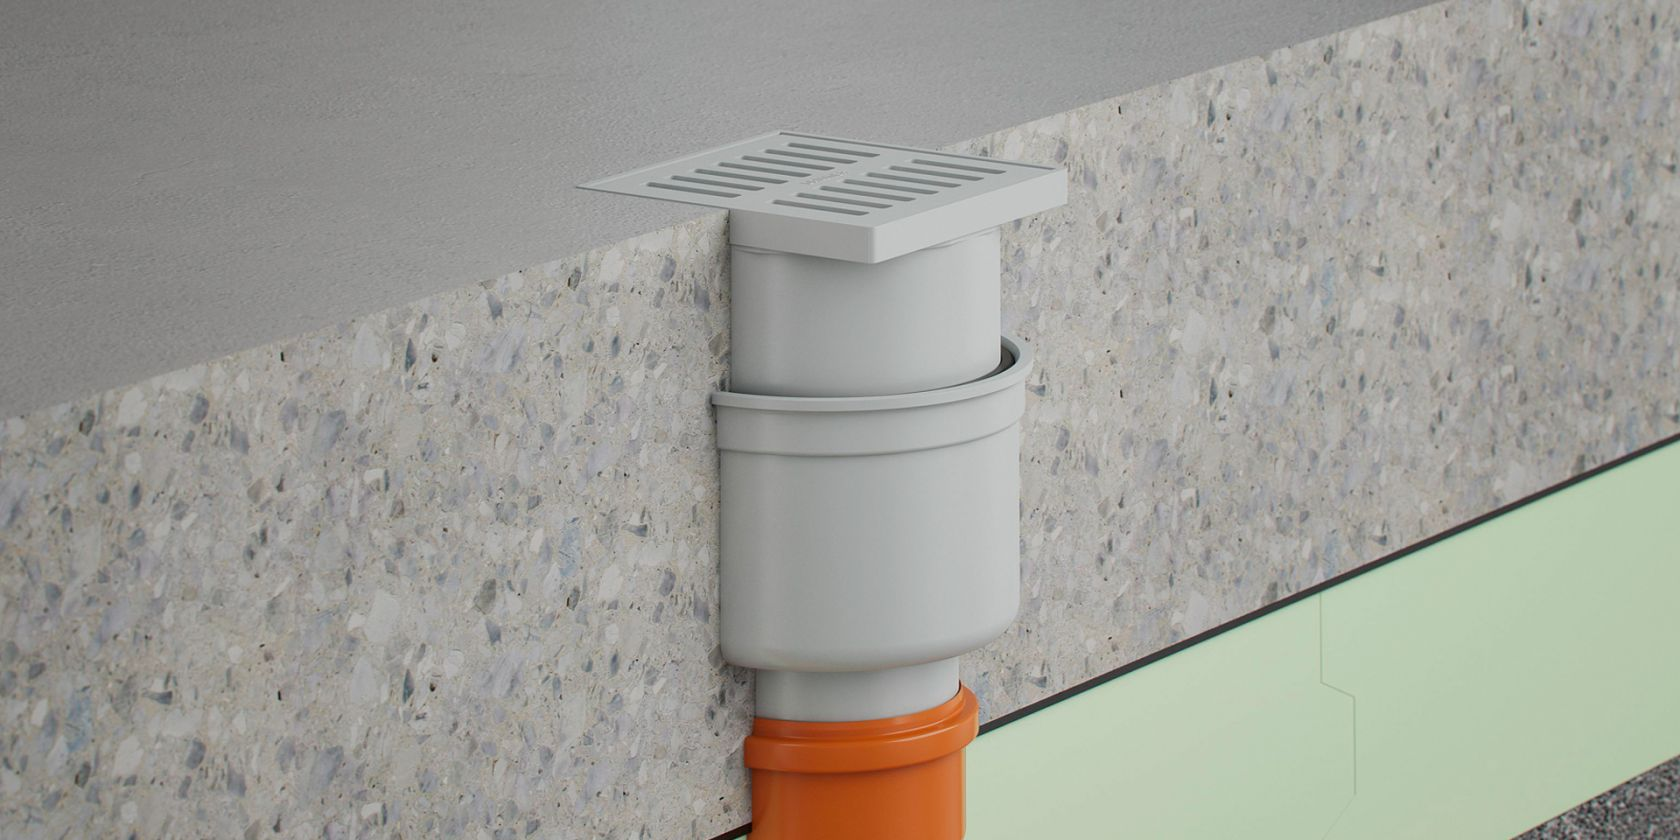 Cellar drains without anti-flooding valve